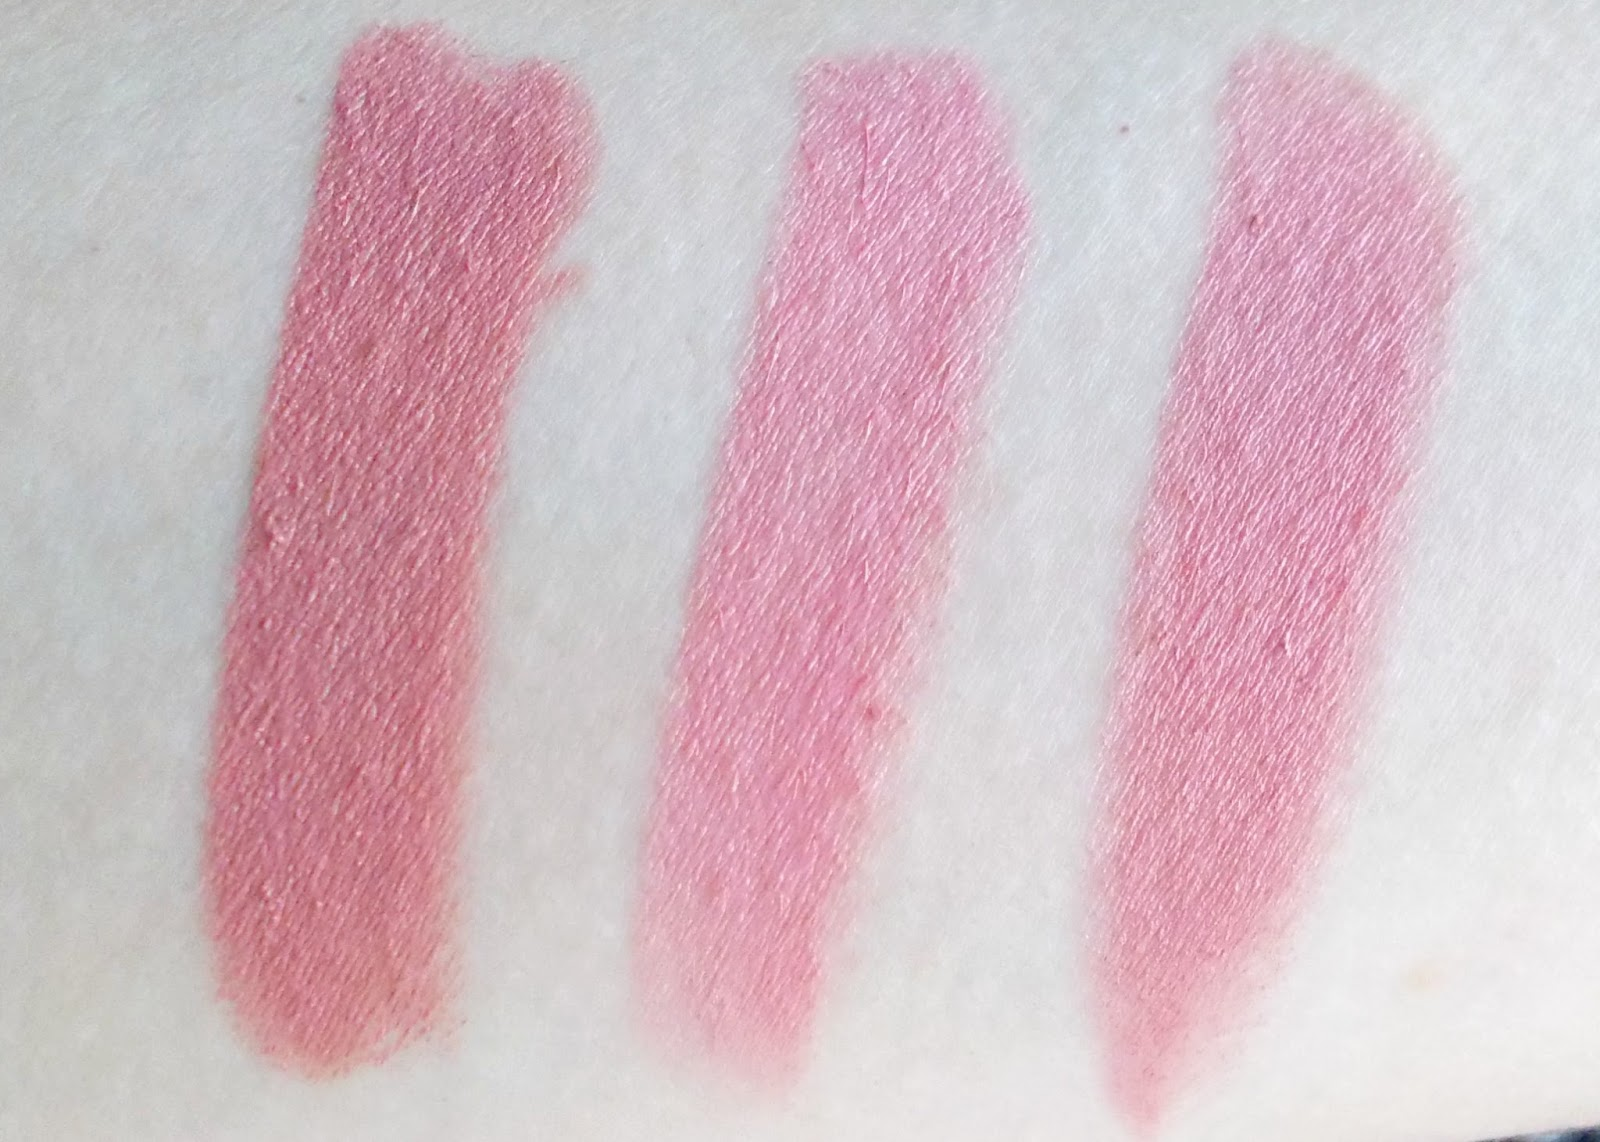 nars audacious anita charlotte tilbury liv it up mac brave swatch